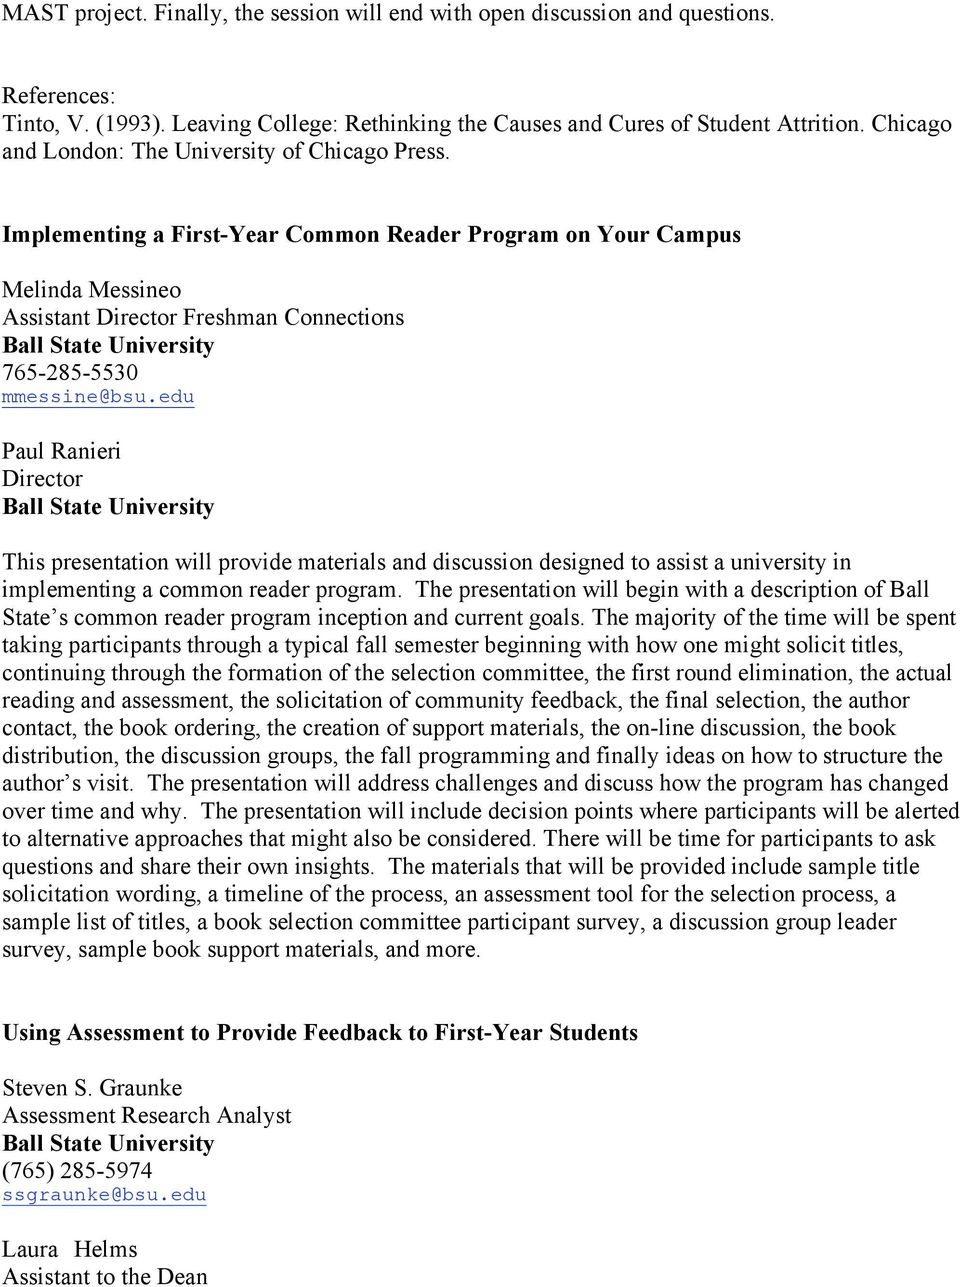 Implementing a First-Year Common Reader Program on Your Campus Melinda Messineo Assistant Director Freshman Connections Ball State University 765-285-5530 mmessine@bsu.